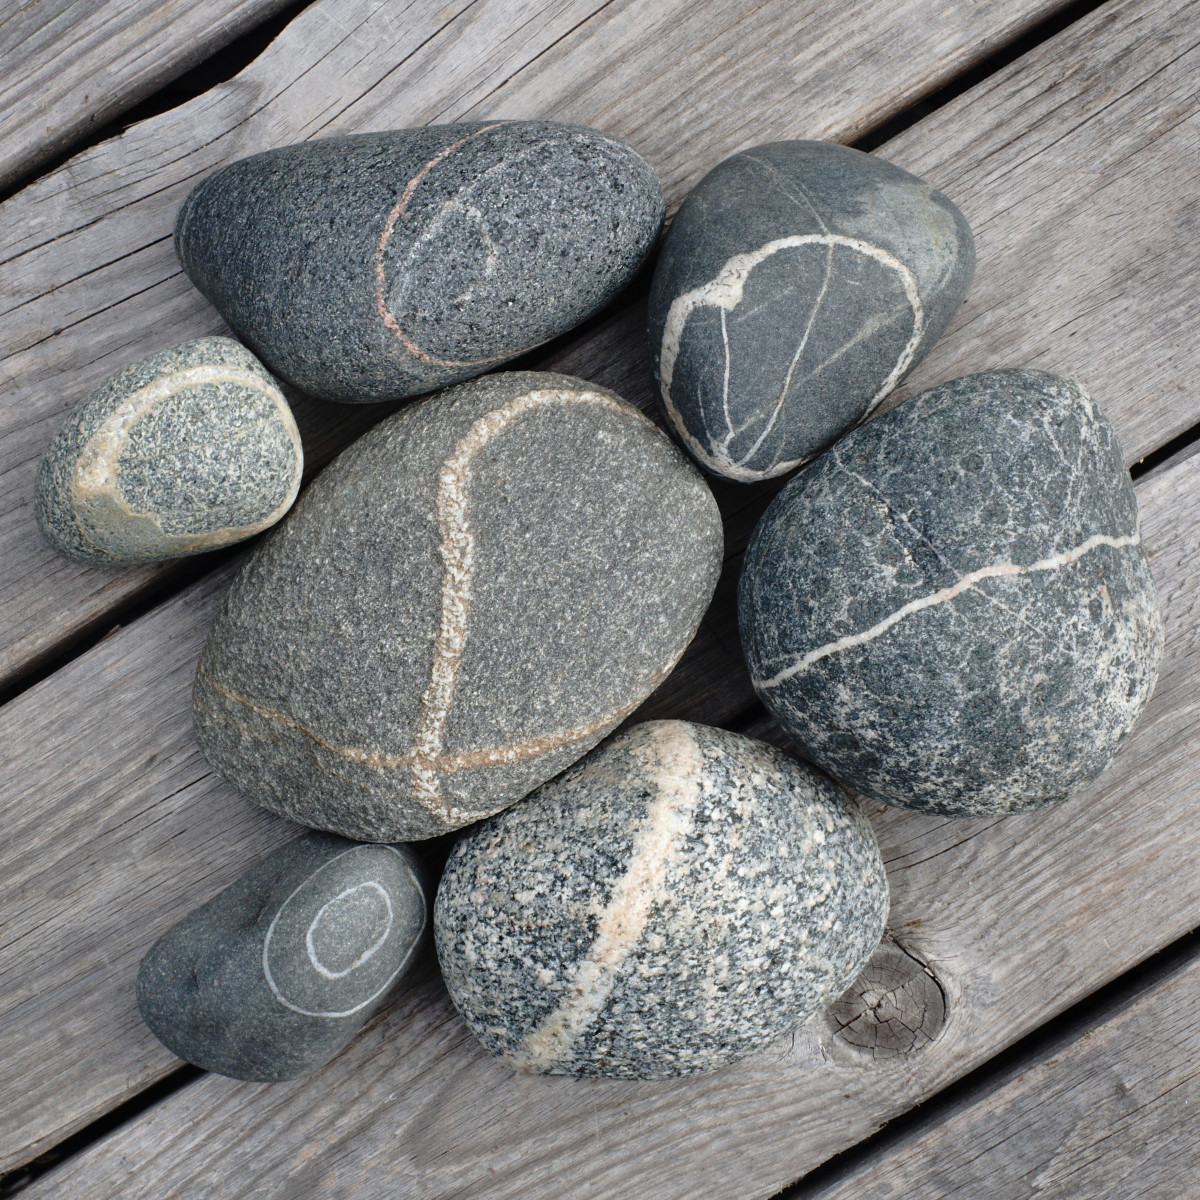 I Found More Rocks on the Beach and Wondered